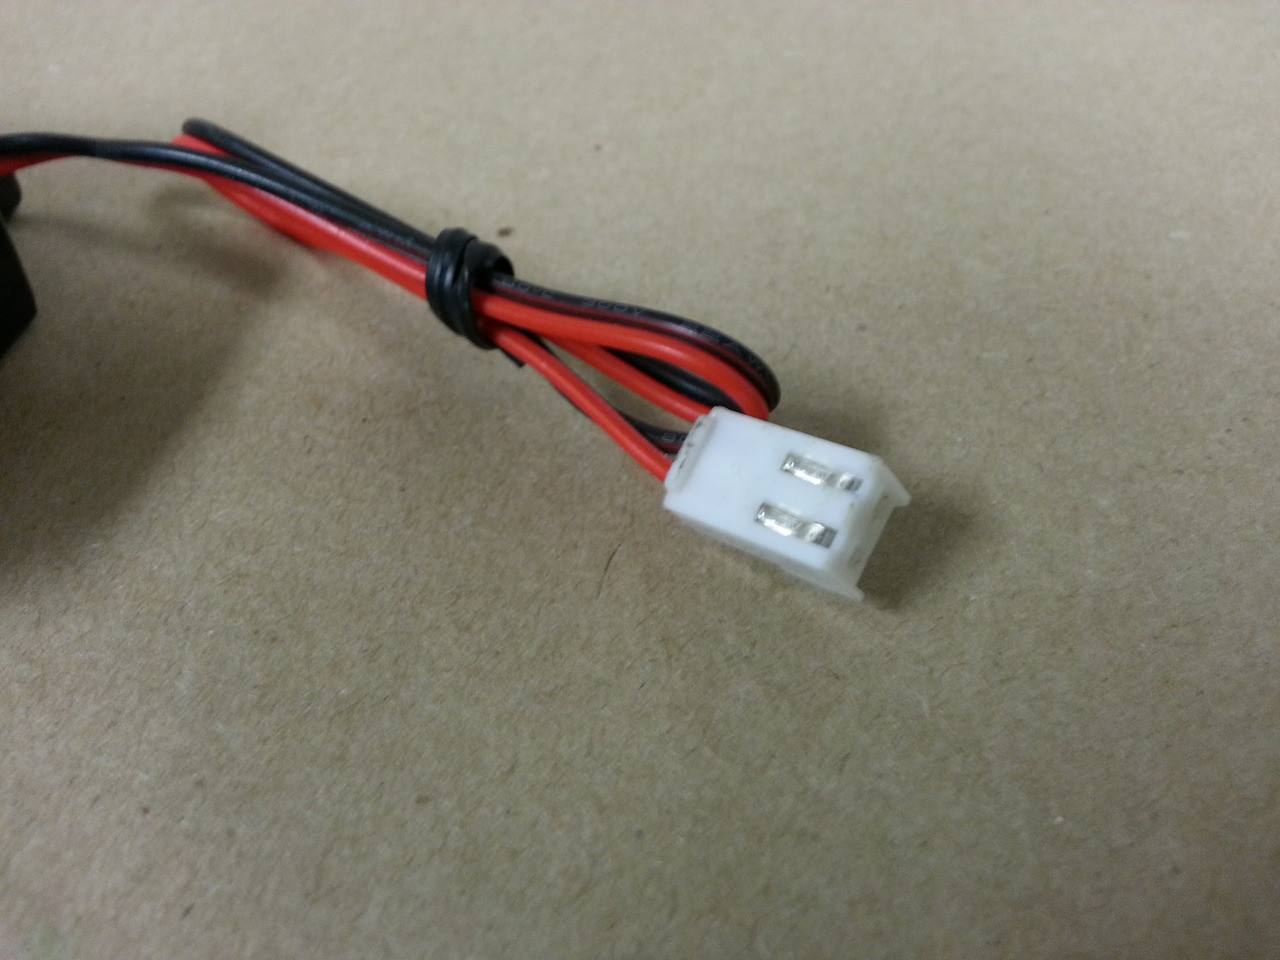 hight resolution of  12 volts 0 8ah w jst connector 8 5 wire leads ub1208